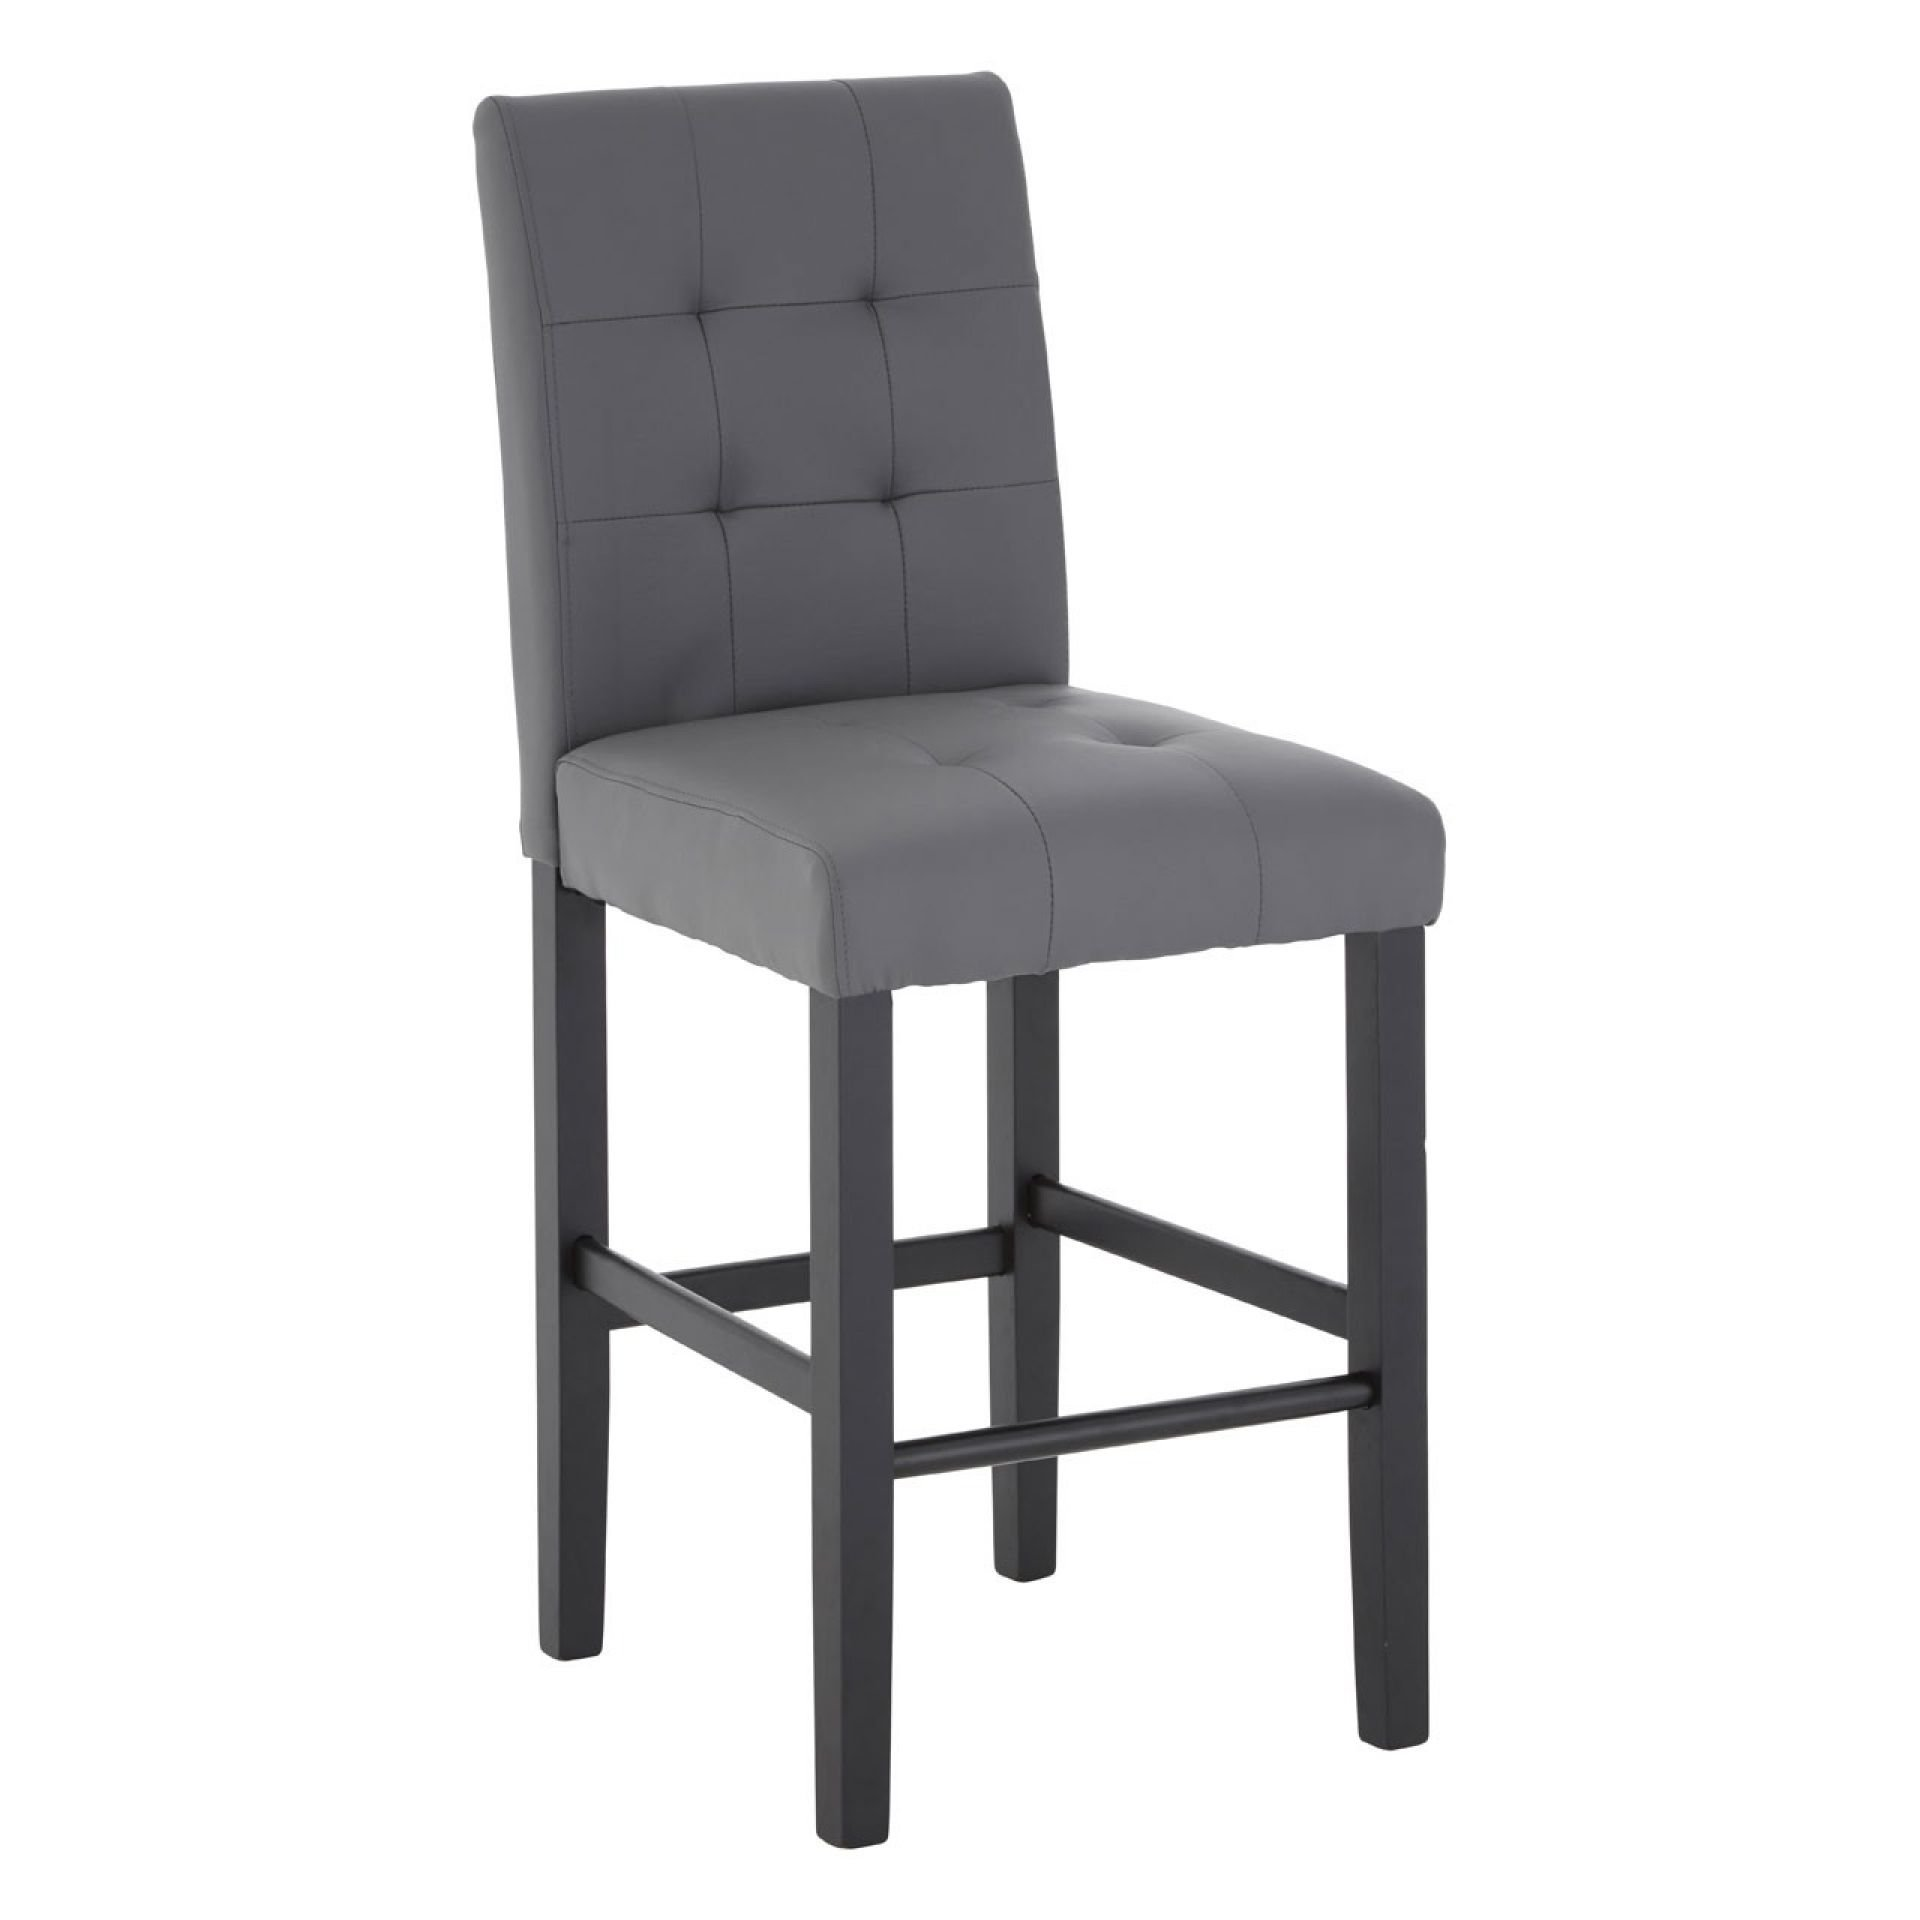 Regency Park Grey Leather Buttoned Bar Chair